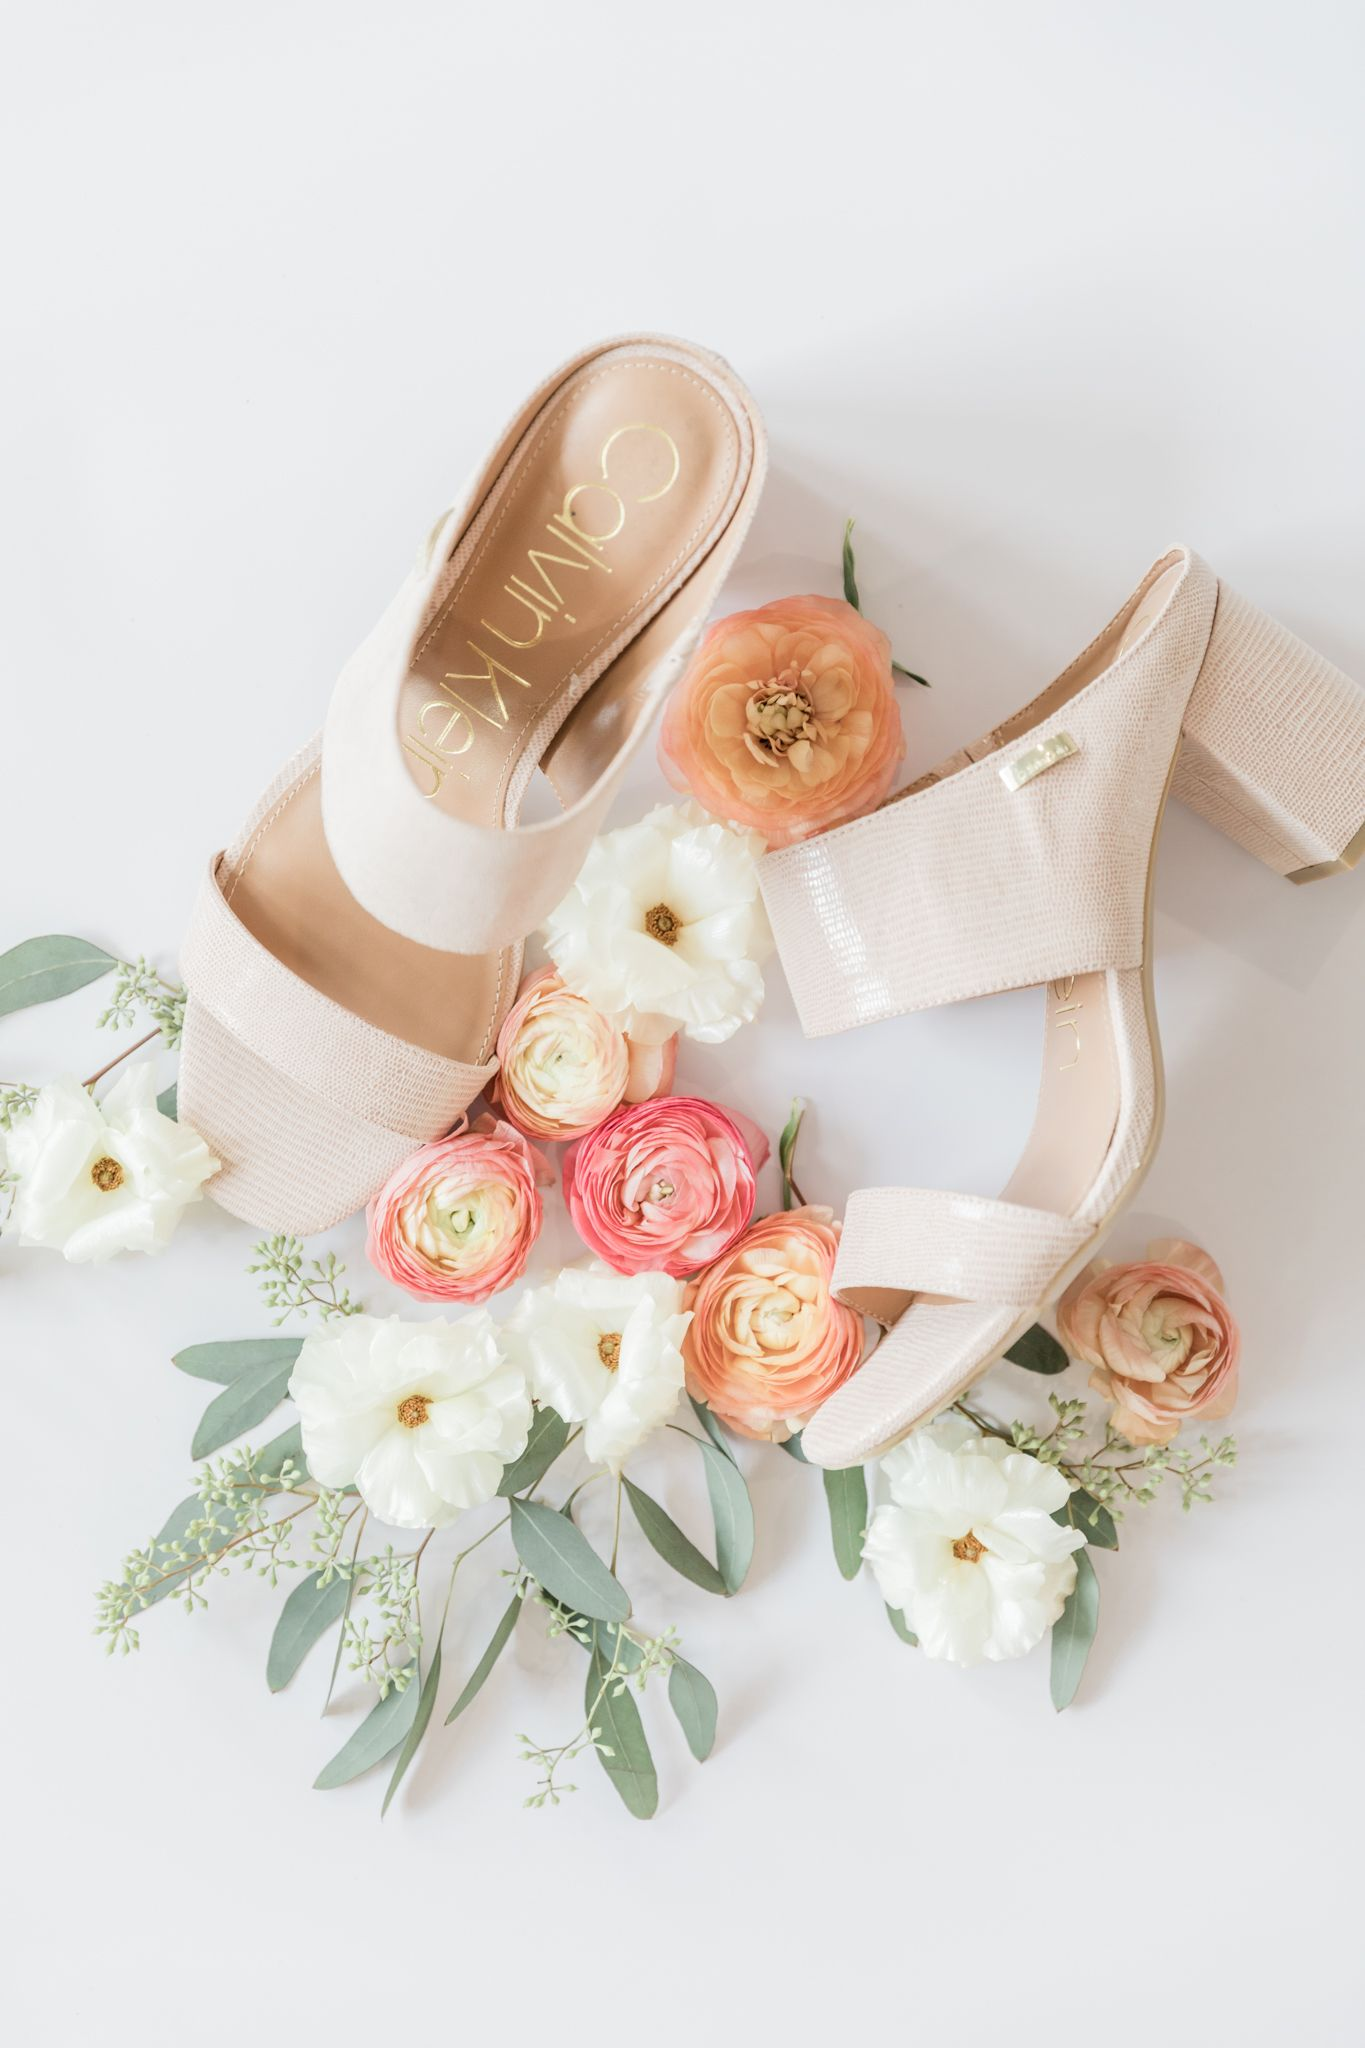 Shoes-Details-Flowers-Texas-Weddings